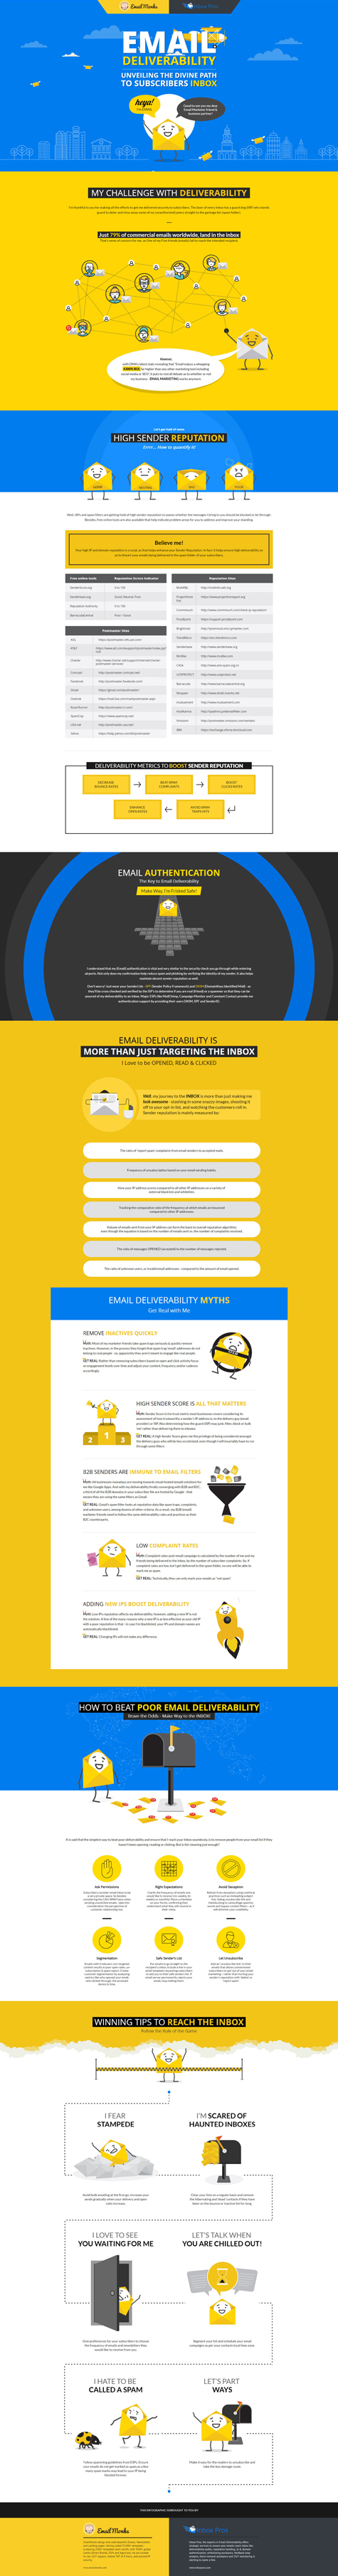 1970 475w infographic Expert Tips for Receiving Better Email Deliverability Rates